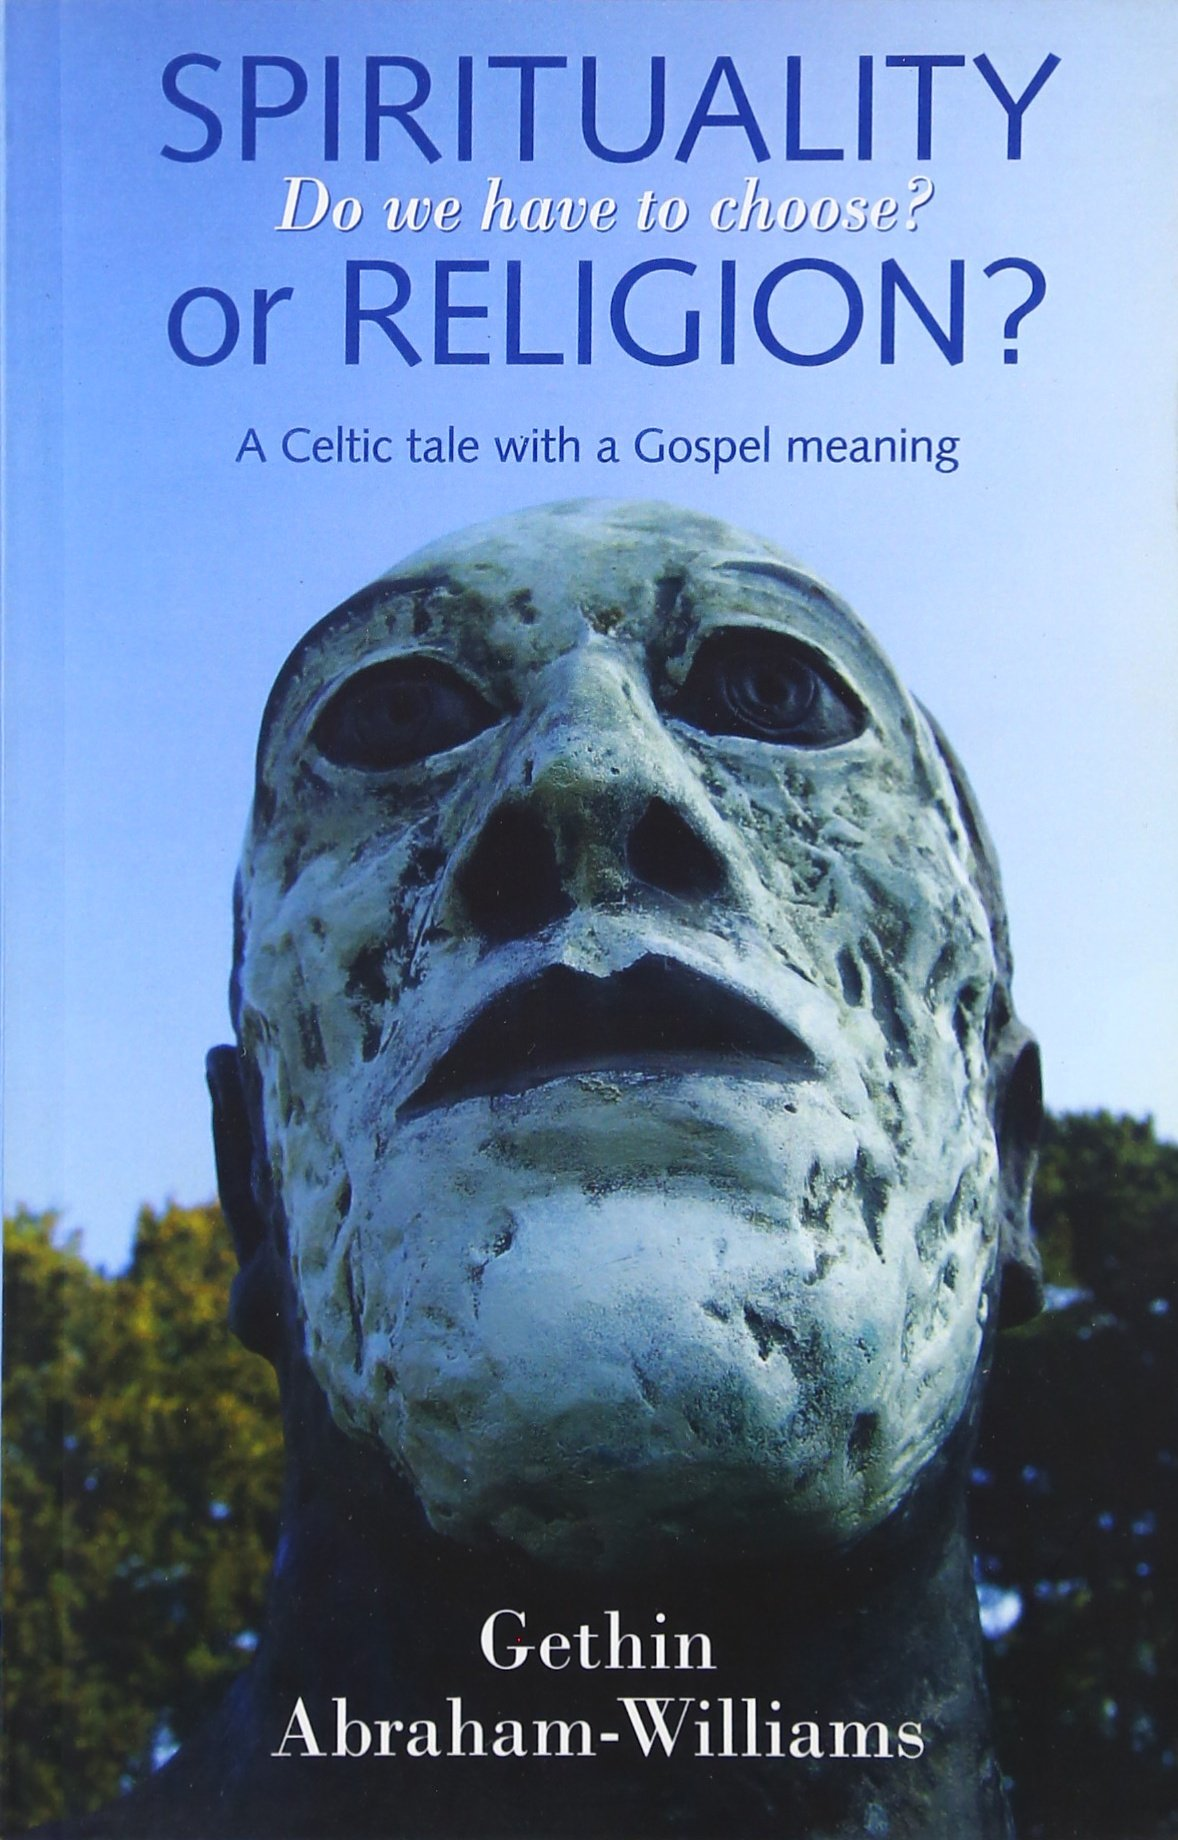 Download Spirituality or Religion?: Do We Have to Choose? PDF